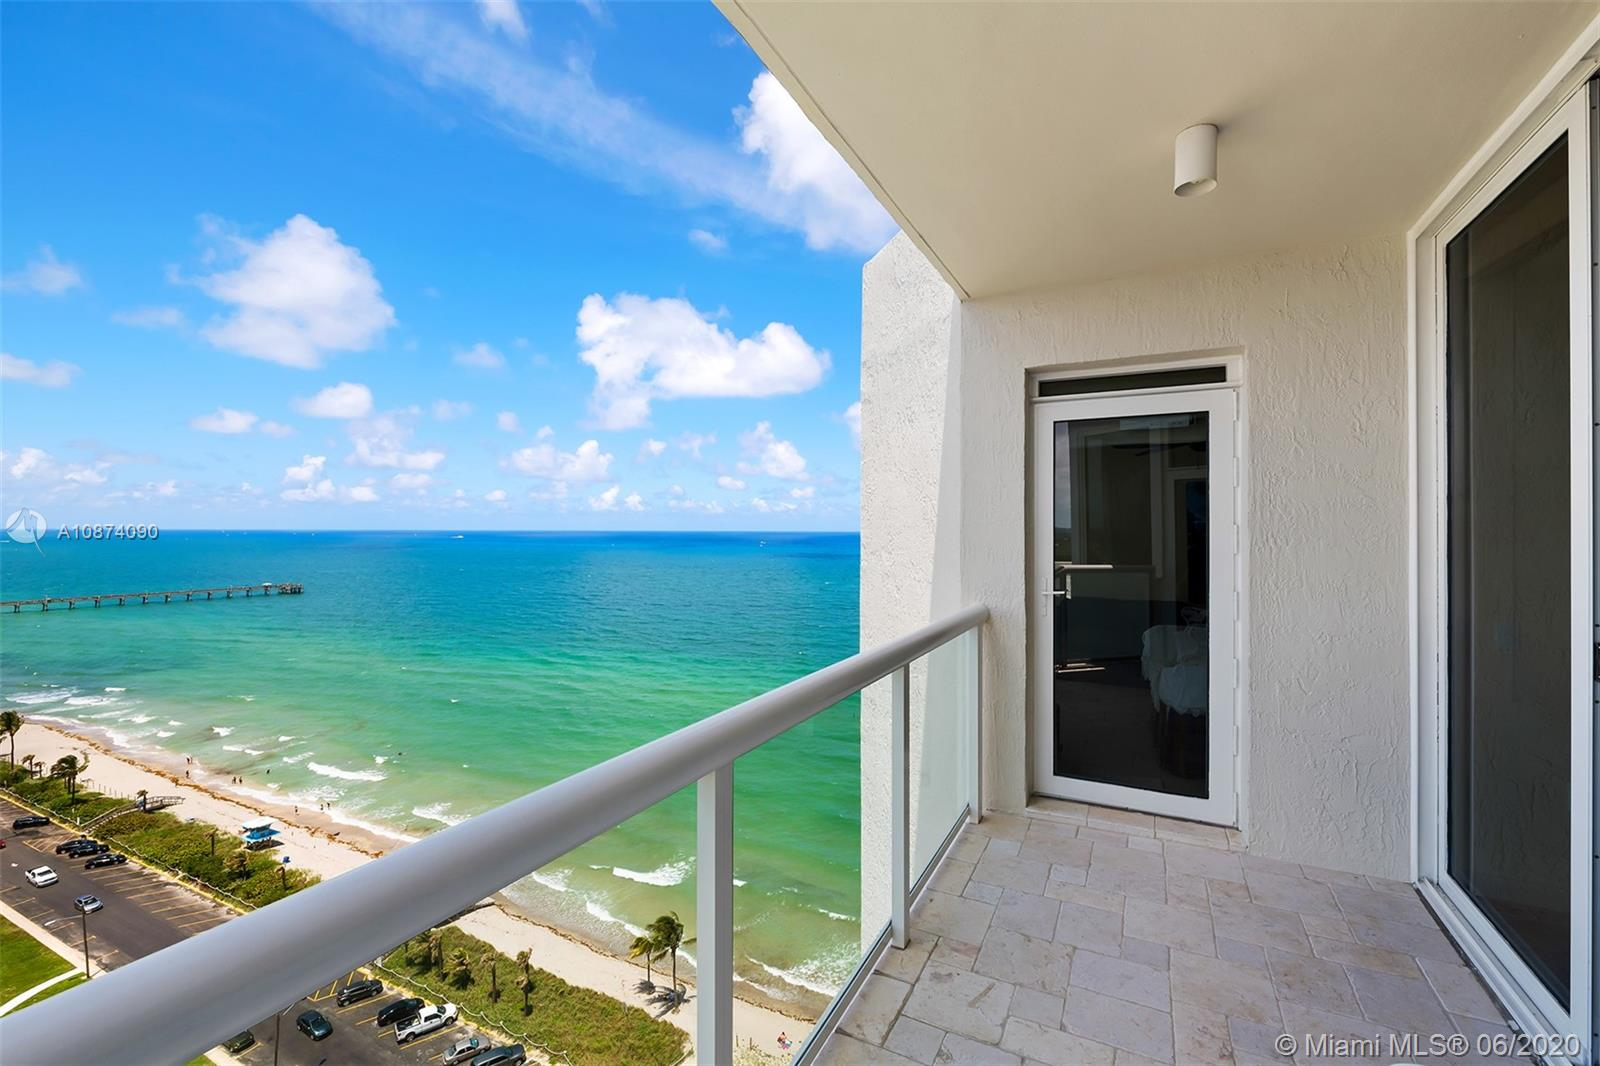 Photo of 6051 Ocean Dr #PH5, Hollywood, Florida, 33019 - Balcony off guest bedrooms